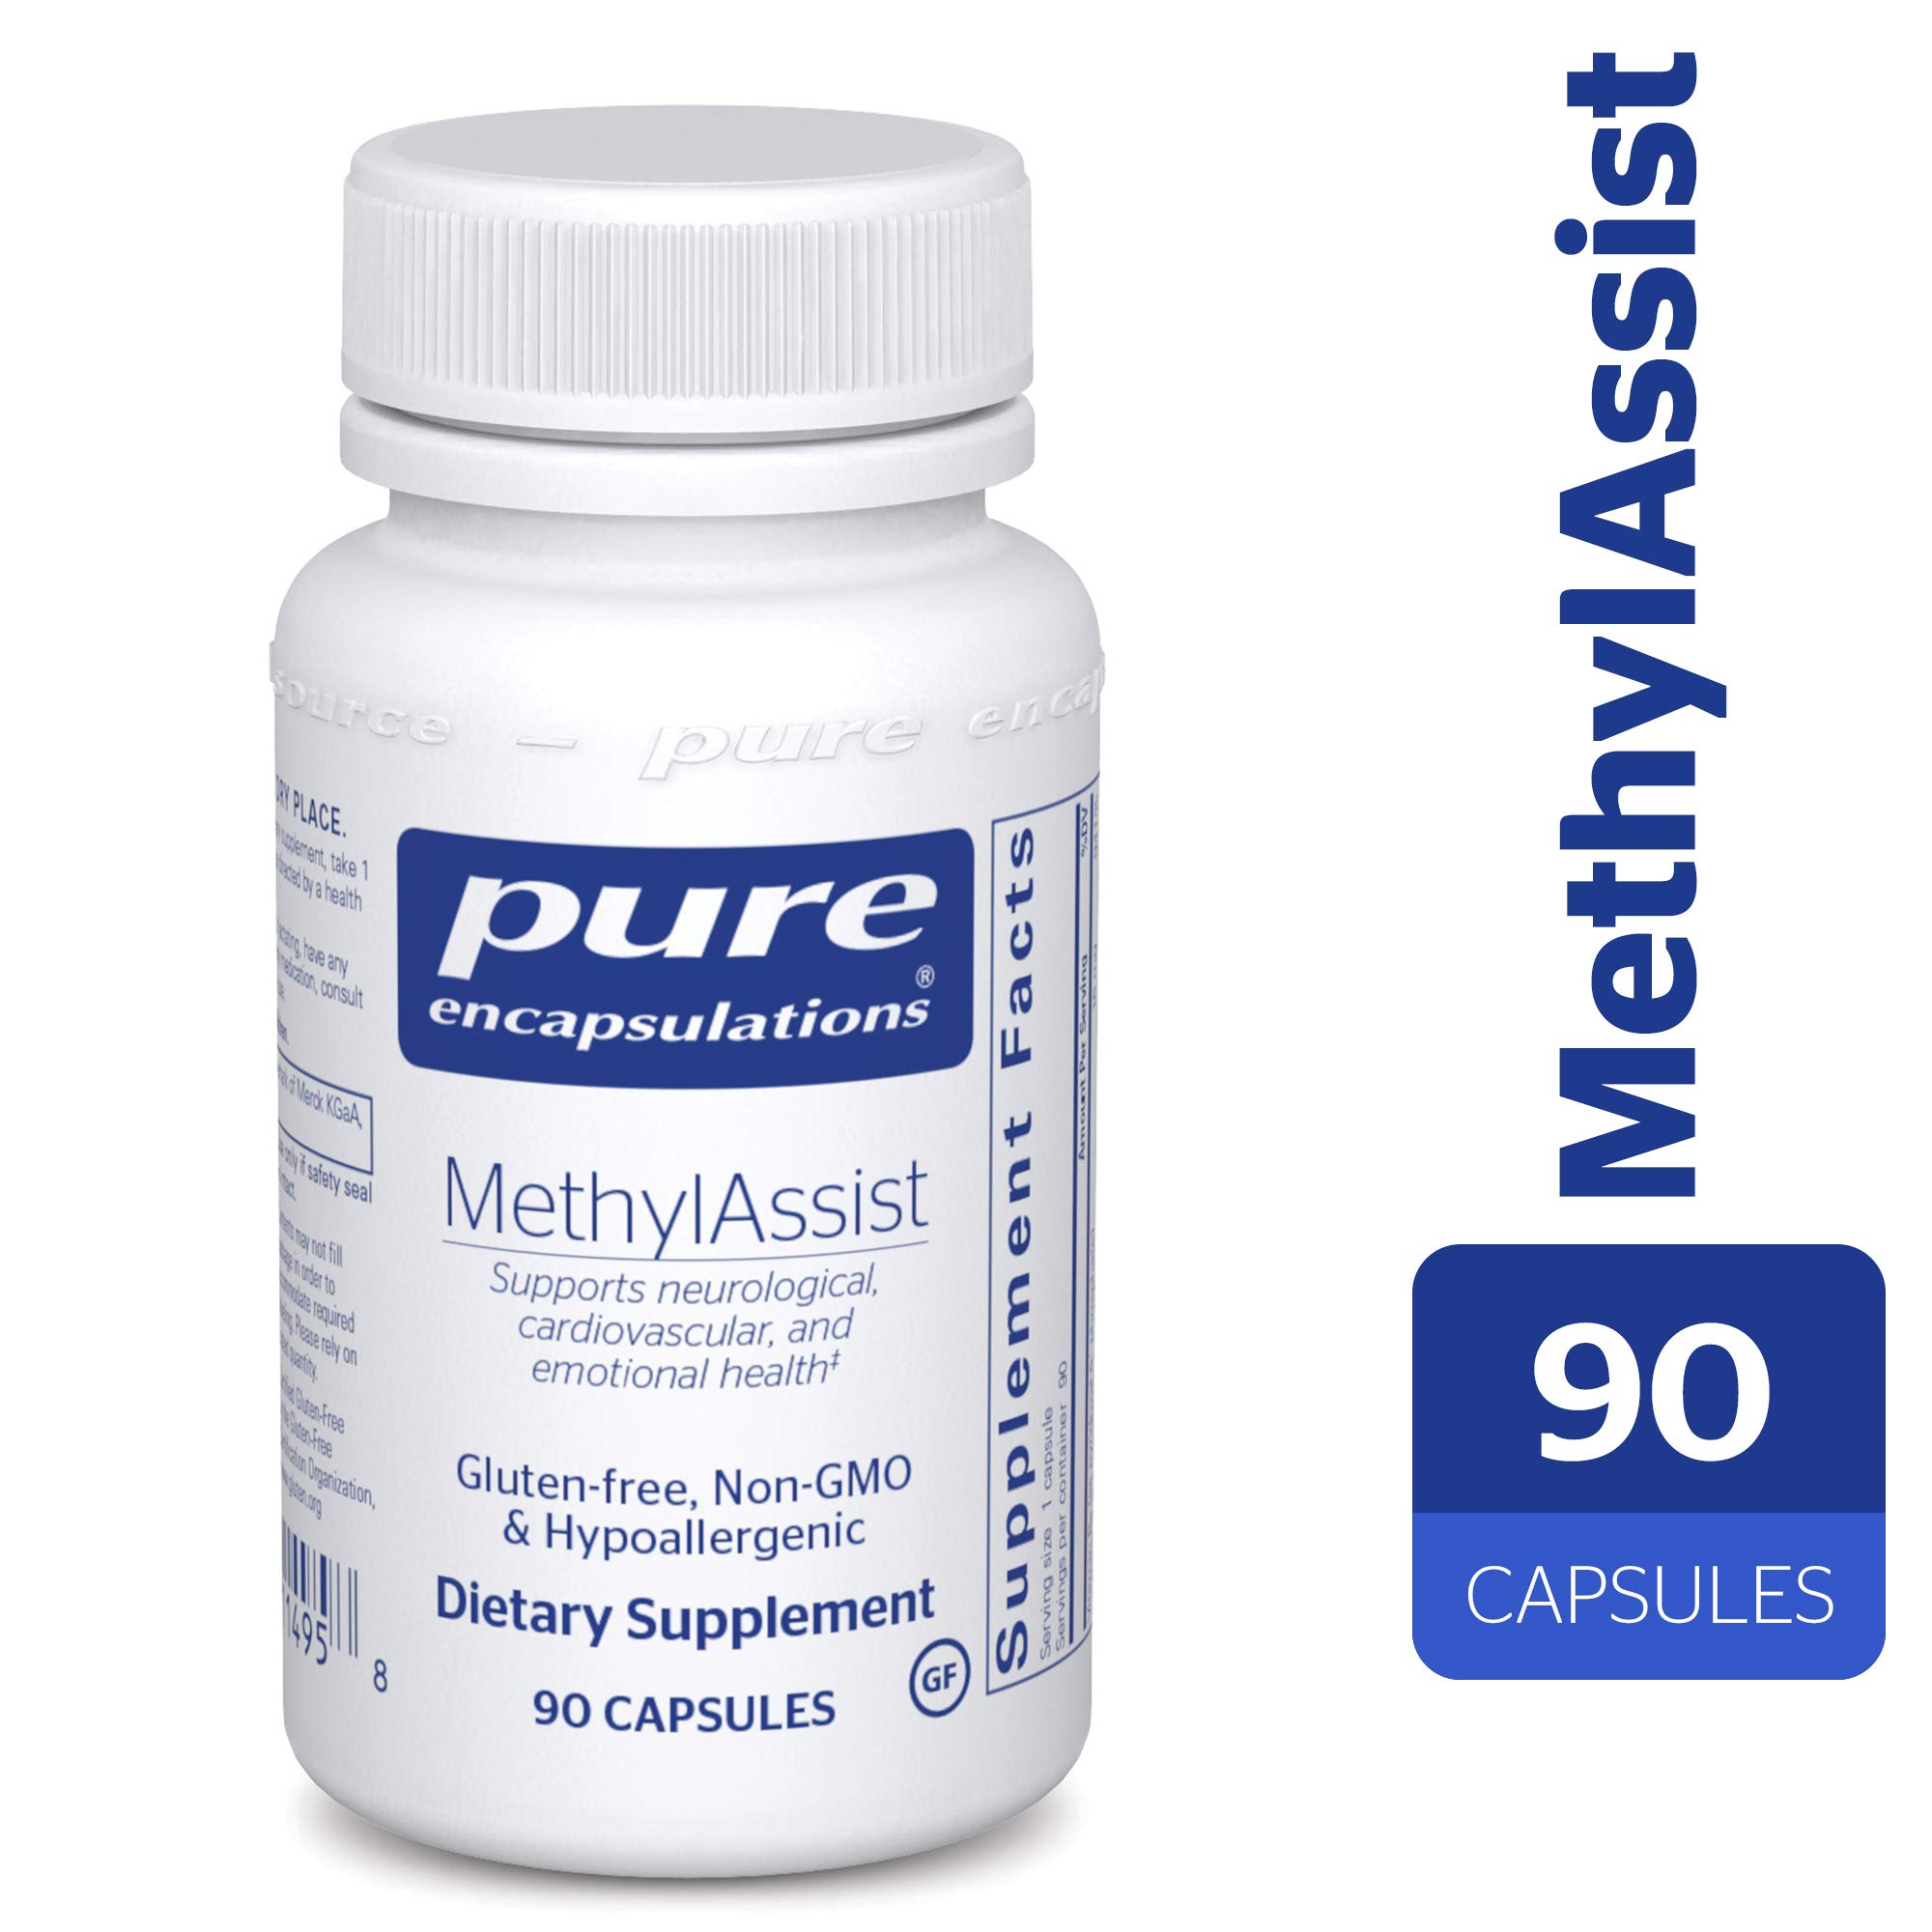 Pure Encapsulations - MethylAssist - Hypoallergenic Supplement with B Vitamins to Support Cardiovascular, Neural and Emotional Health* - 90 Capsules by Pure Encapsulations